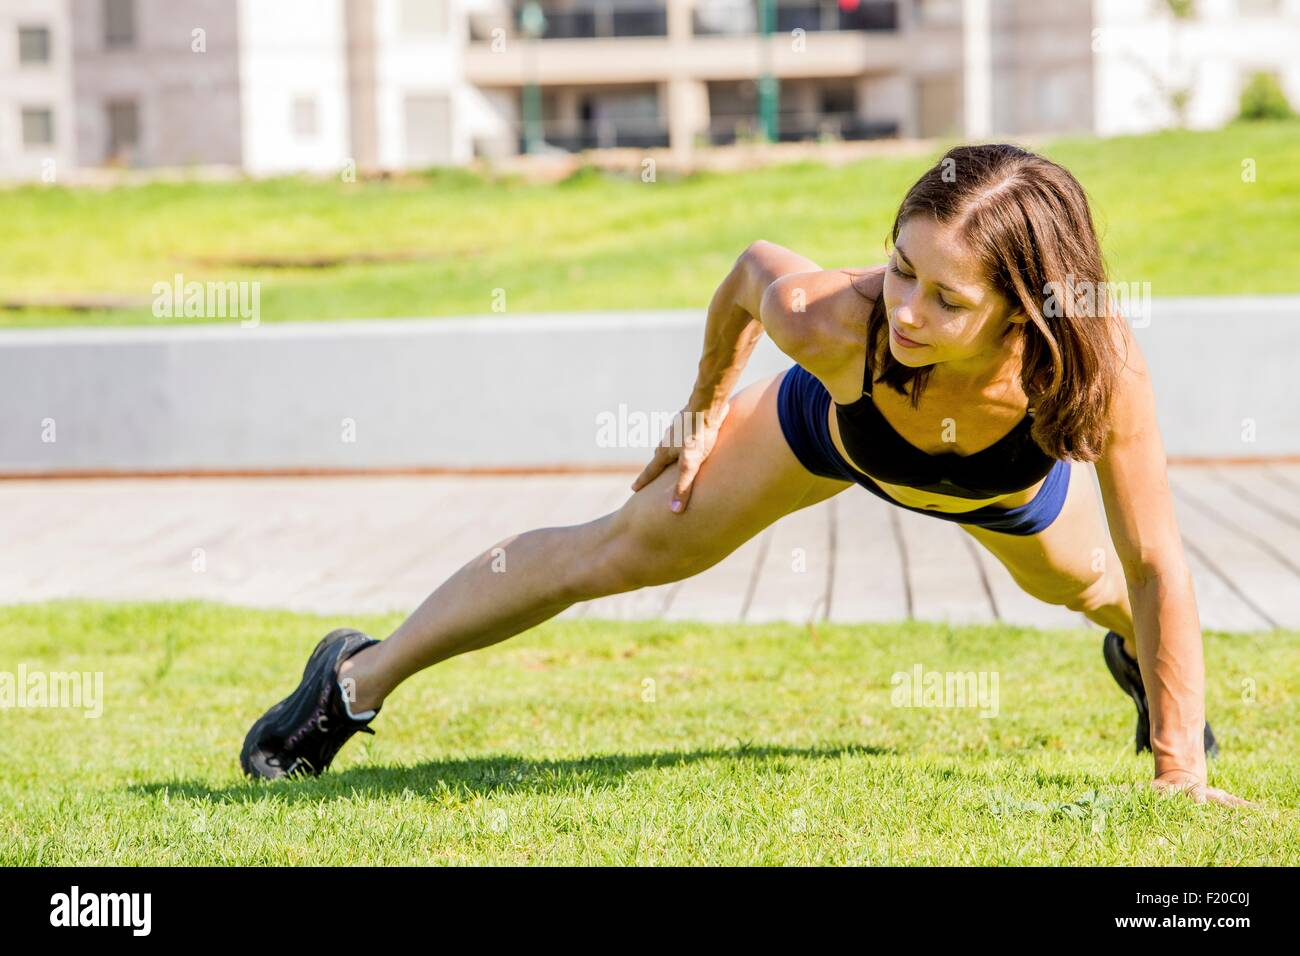 Young woman exercising in park Banque D'Images